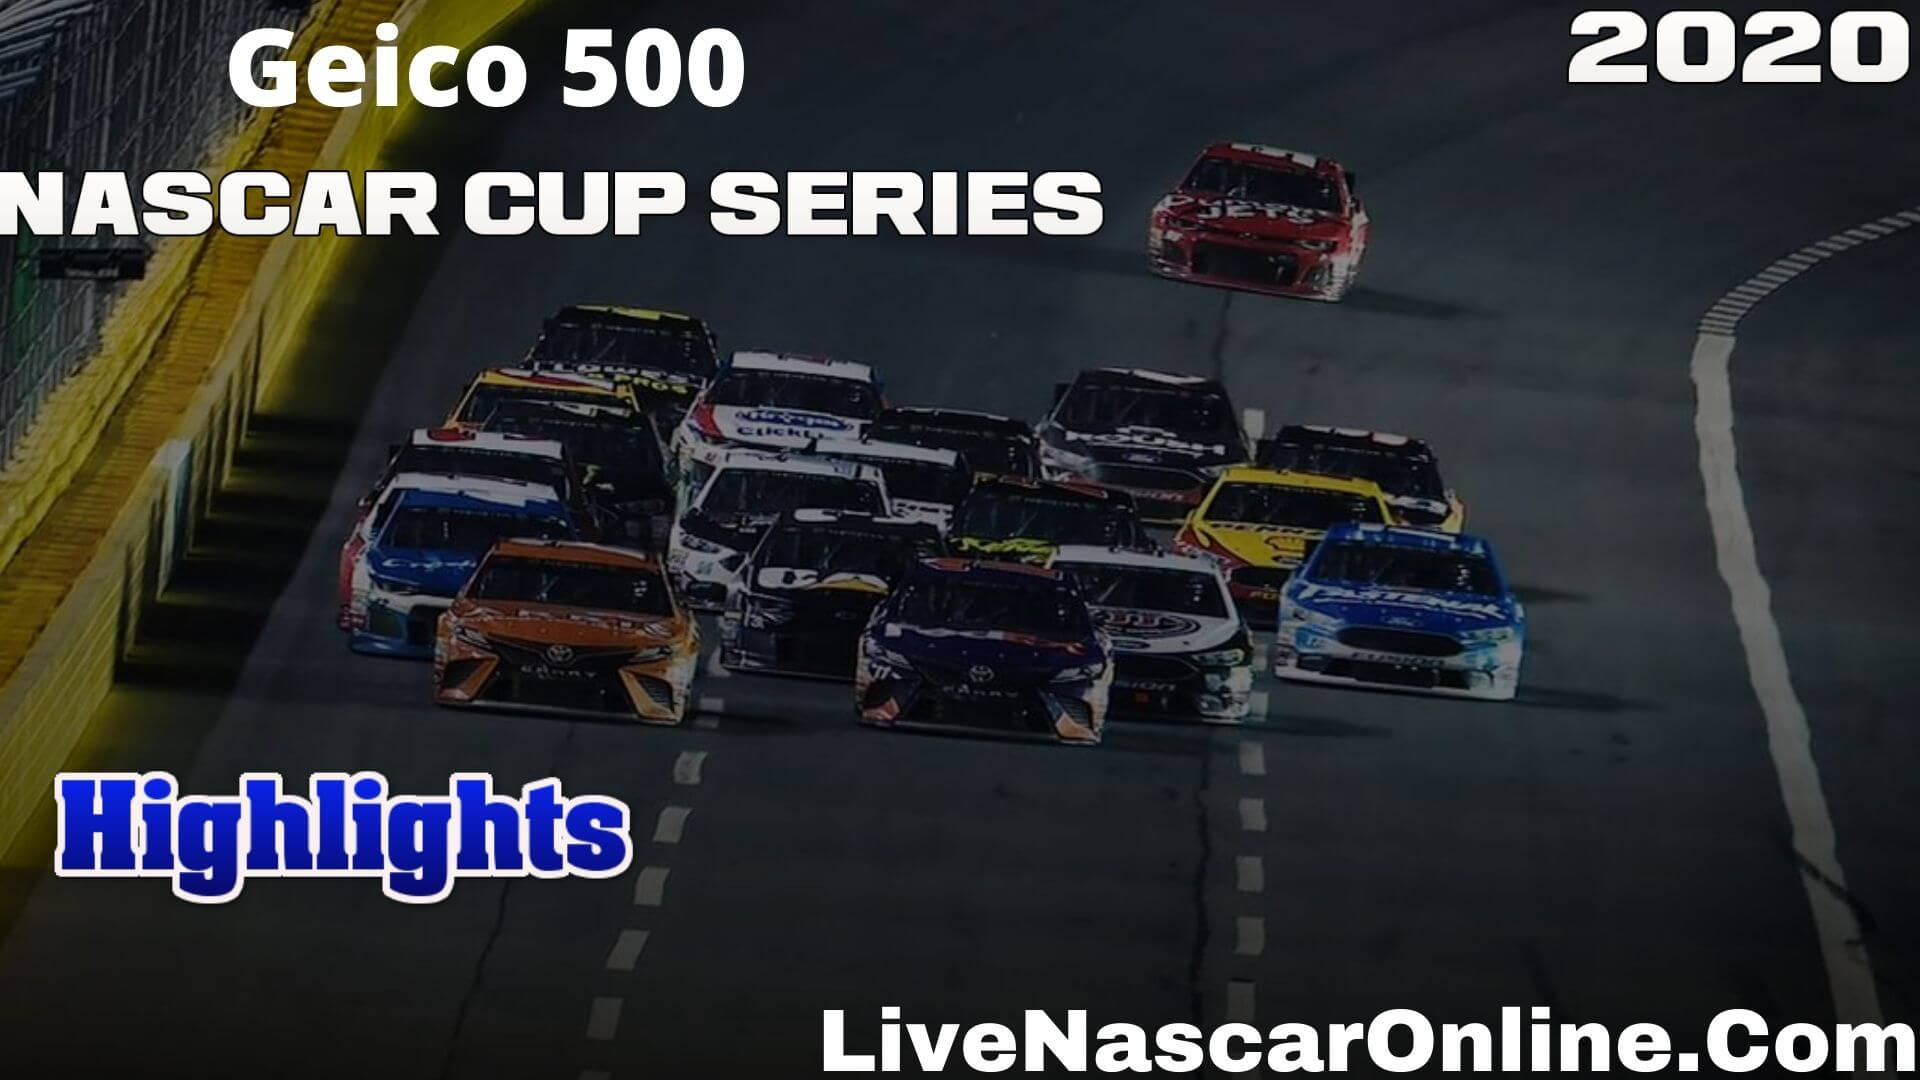 Geico 500 Nascar Cup Series Highlights 2020